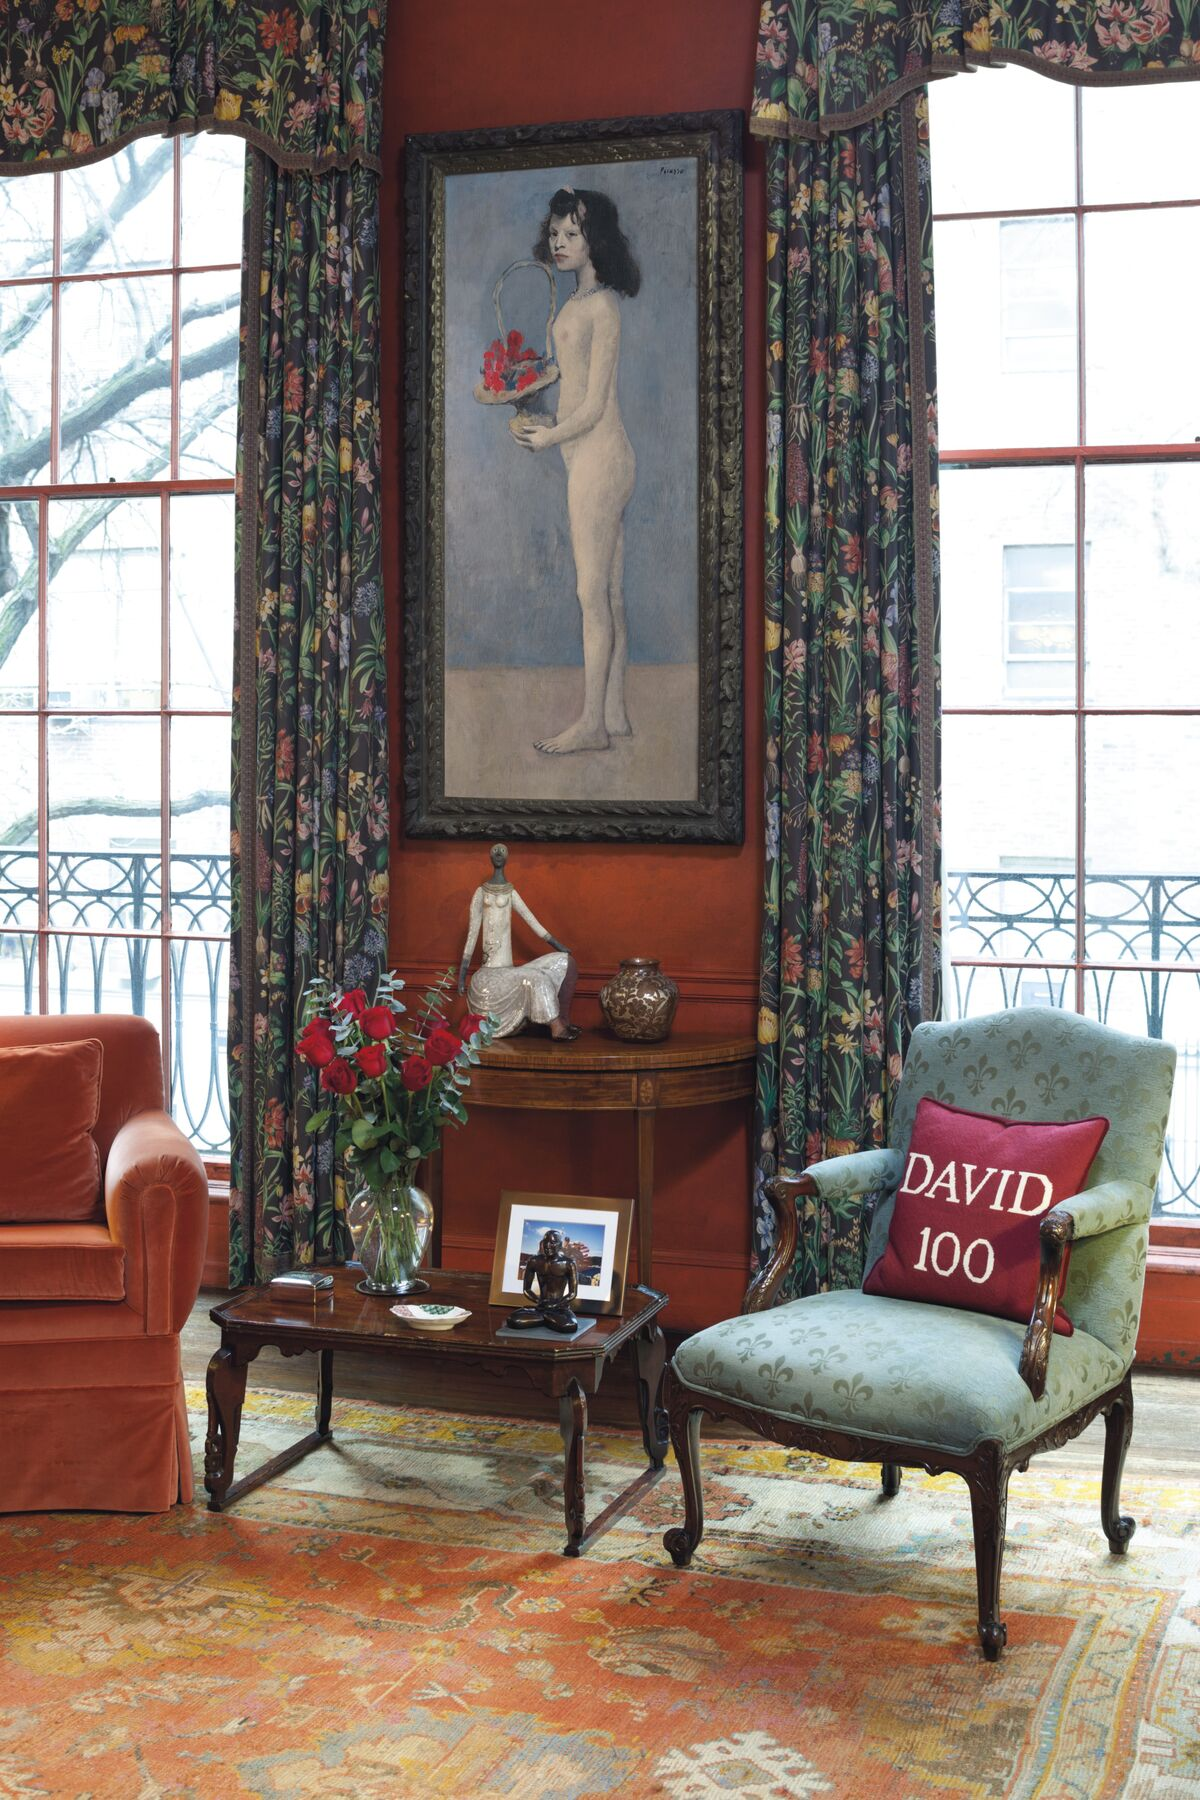 View of Pablo Picasso, Fillette à la corbeille fleurie, 1905, at the Rockefeller's library in their East 65th Street Manhattan townhouse.